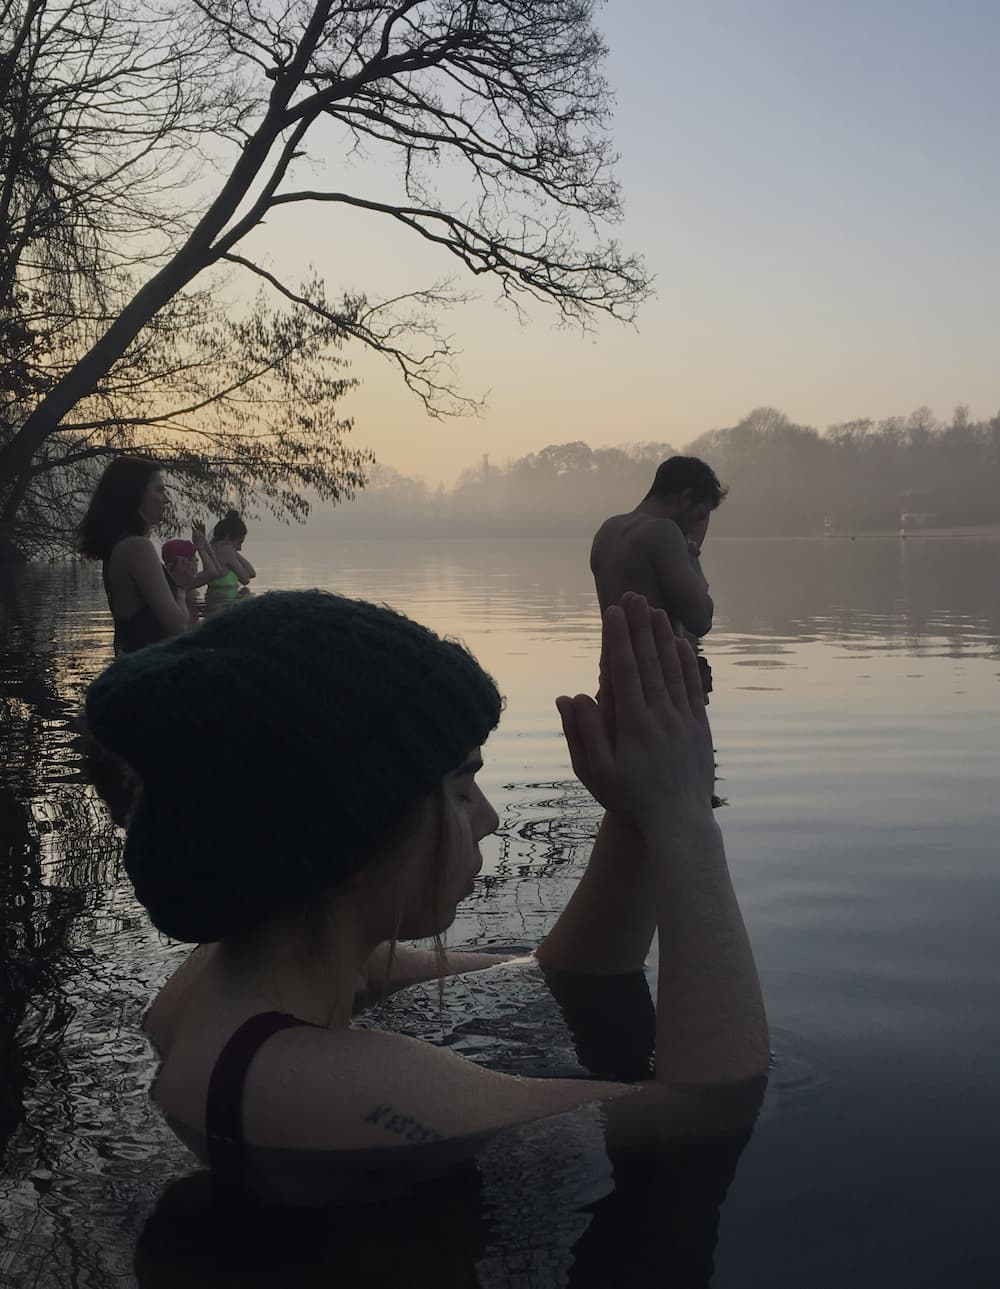 Meditation in cold water